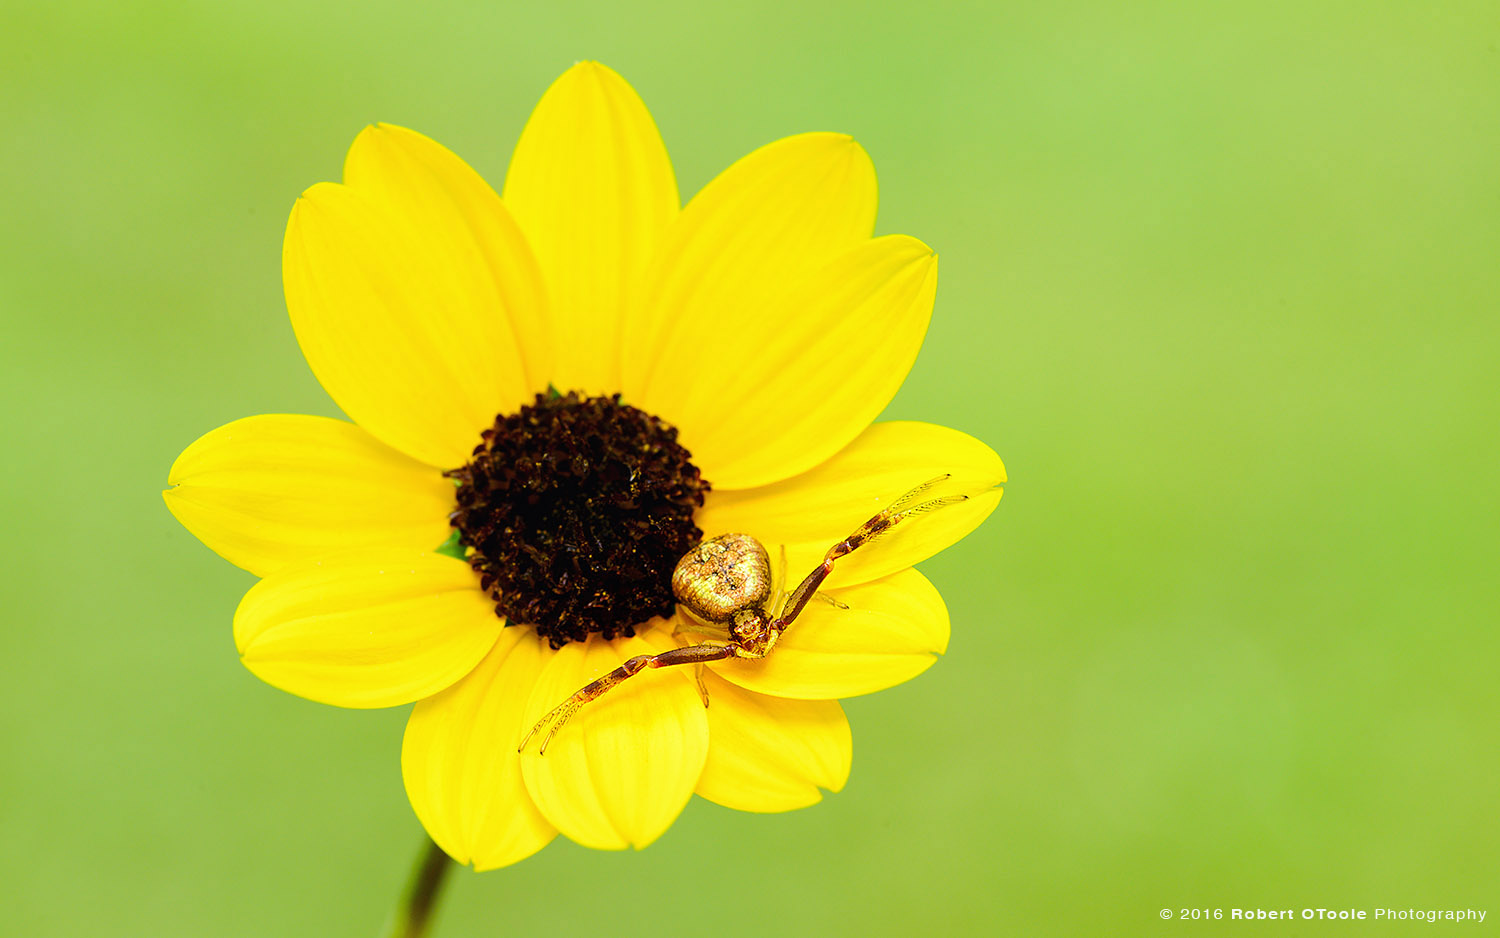 Yellow Crab Spider on Sunflower in Florida